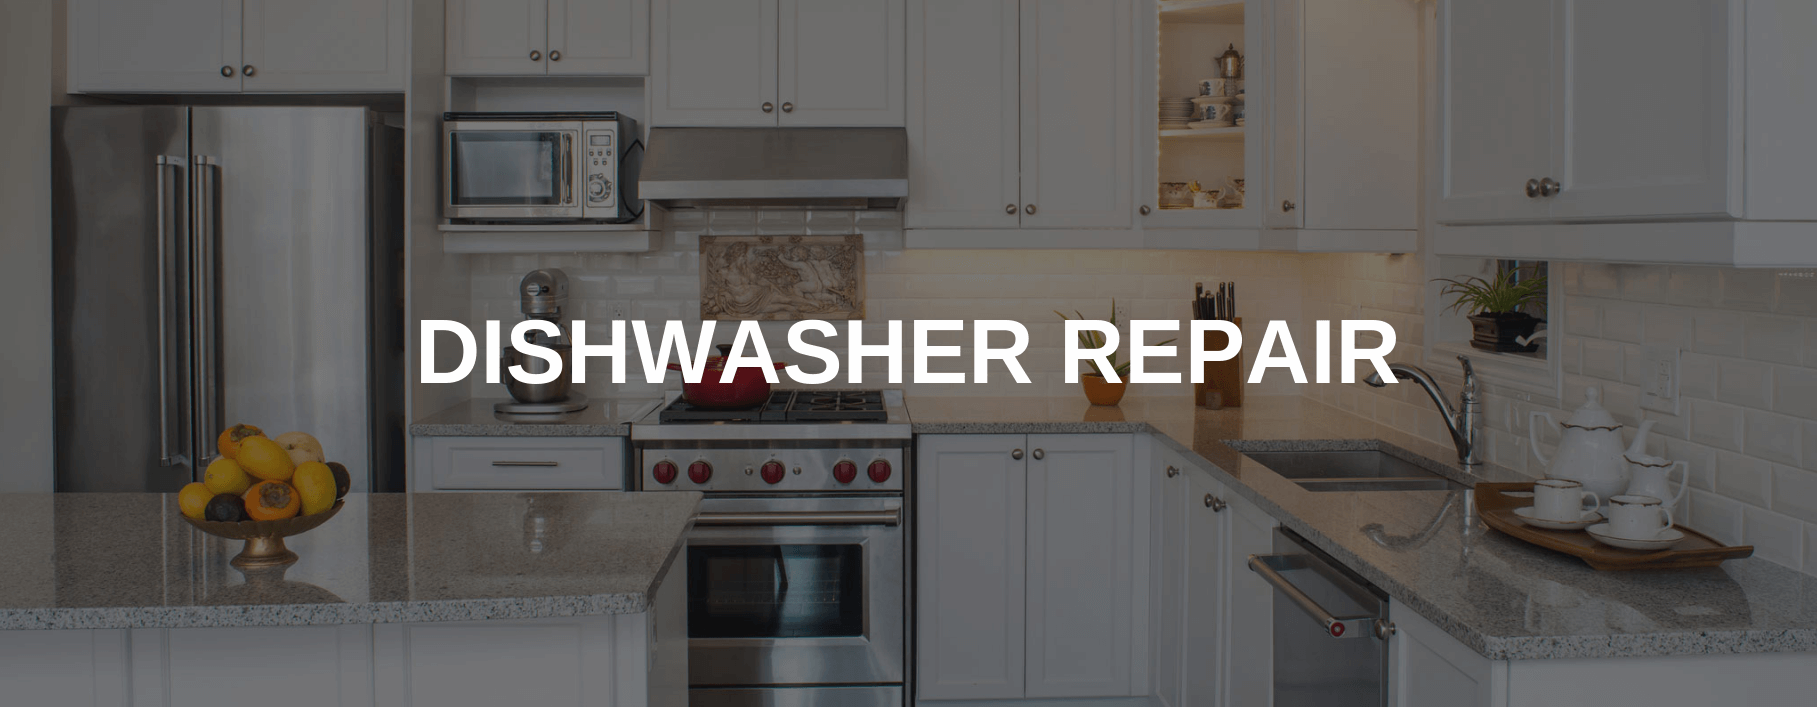 dishwasher repair baytown